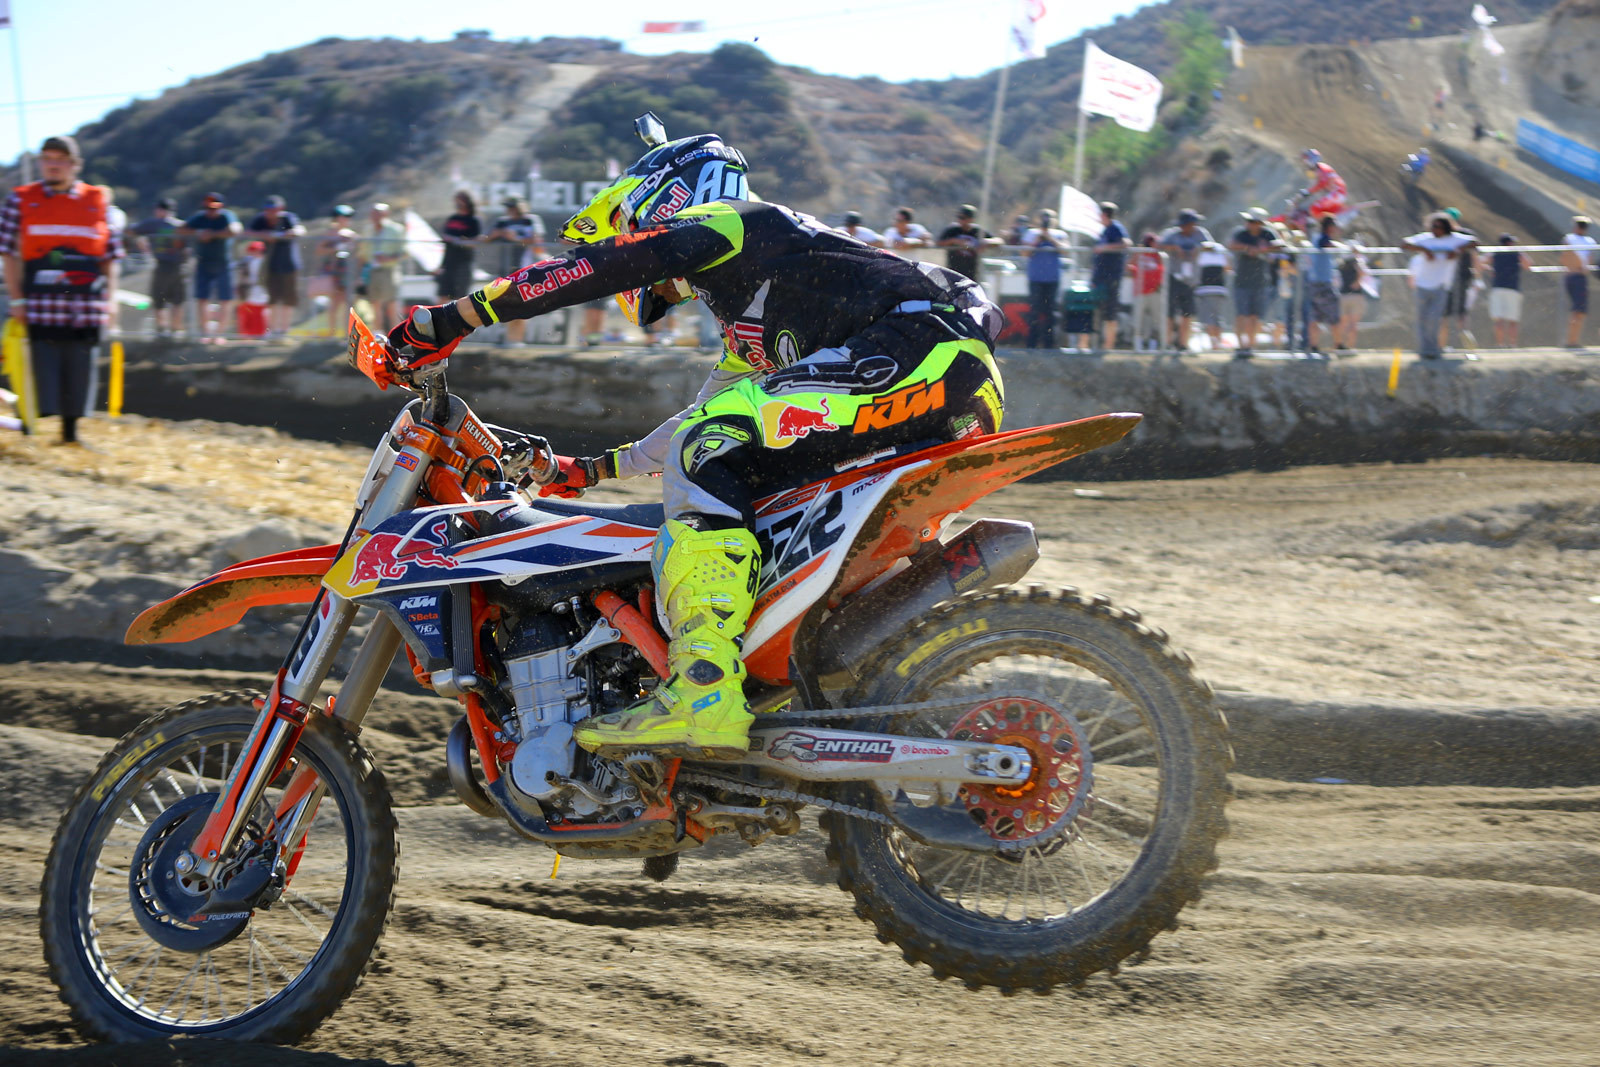 Antonio Cairoli - Photo Blast: MXGP of the USA - Motocross Pictures - Vital MX